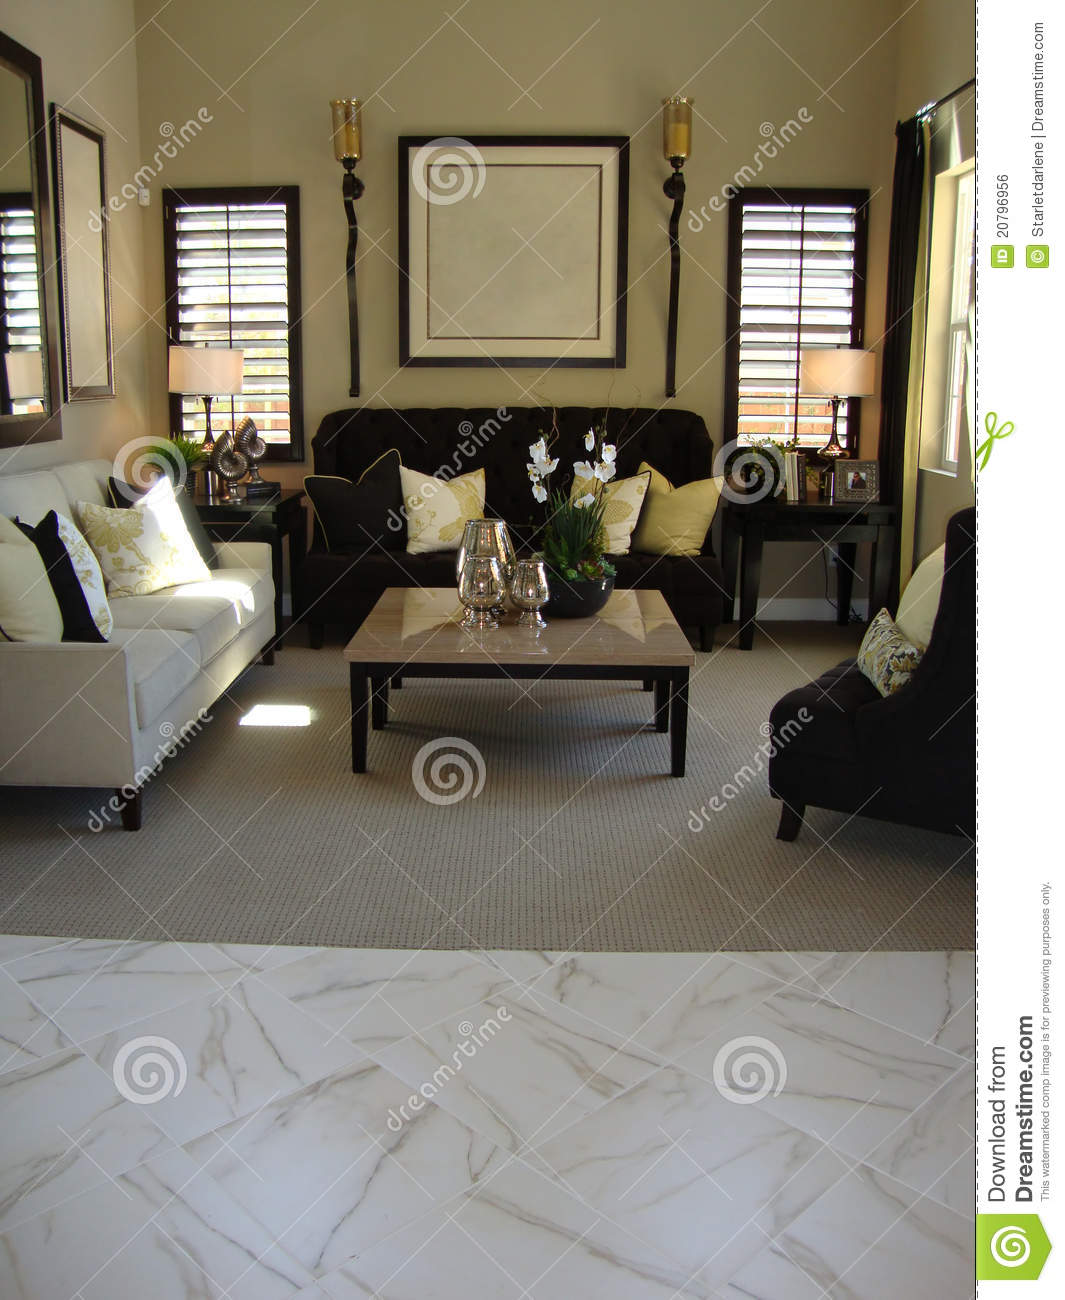 Fabulous Beautiful living room with windows with shudders white and brown 1065 x 1300 · 152 kB · jpeg